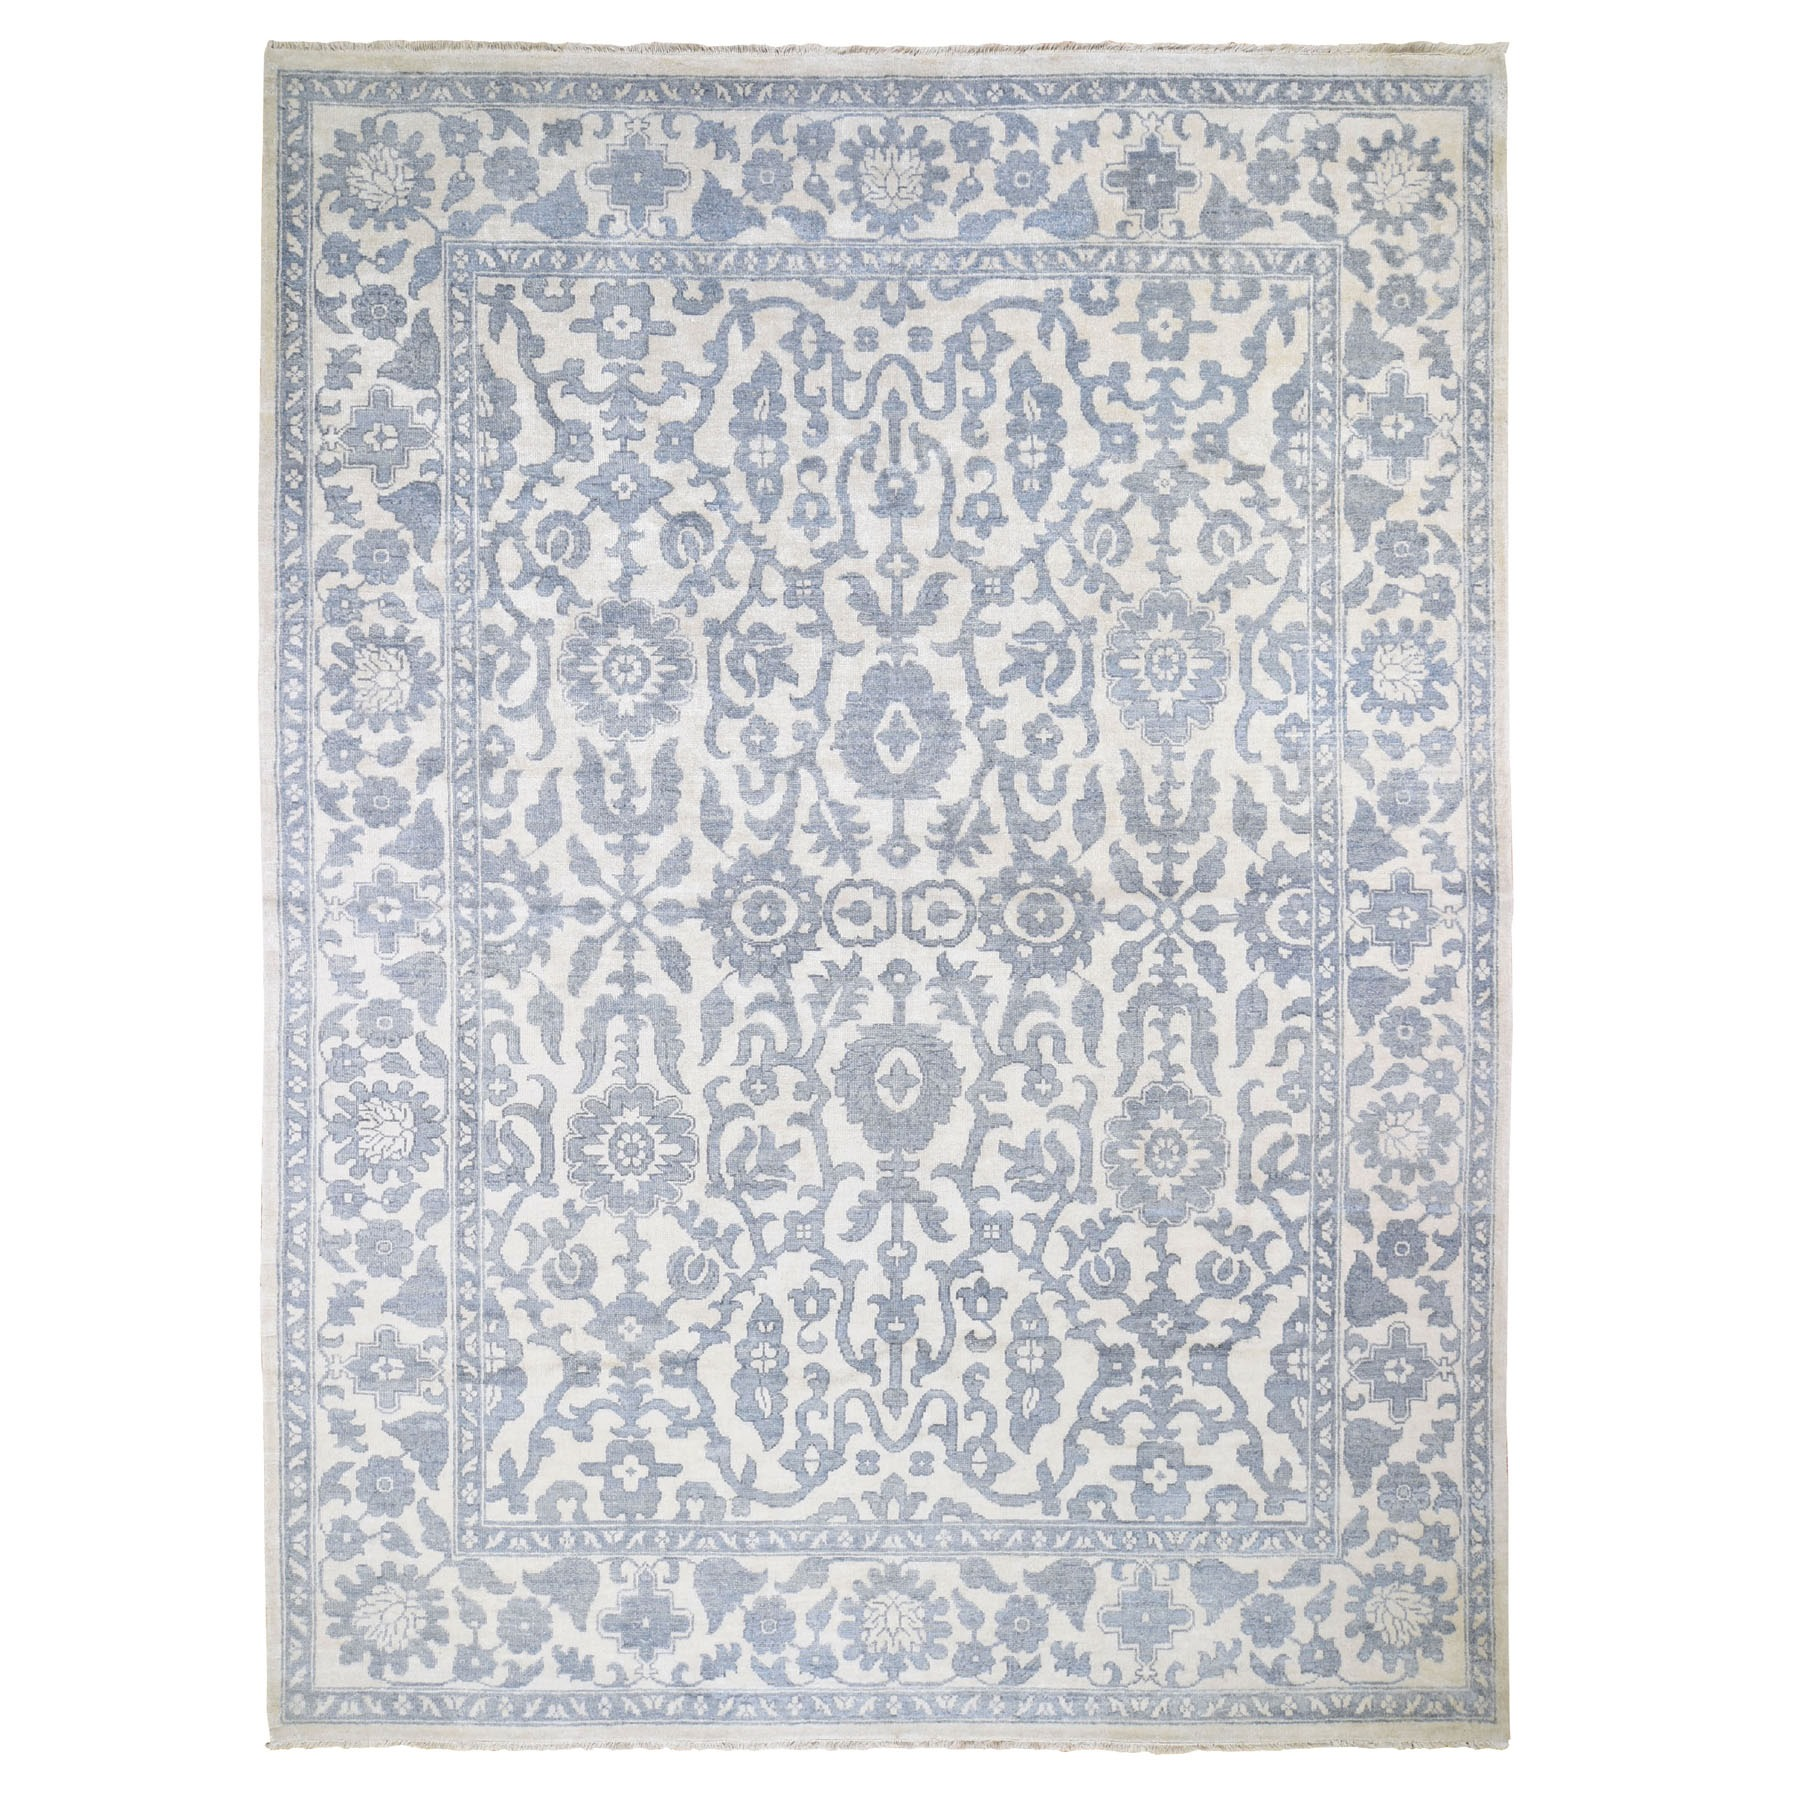 """8'10""""X12' Tone On Tone Art Silk Hand-Knotted Oushak Oriental Rug moad86db"""